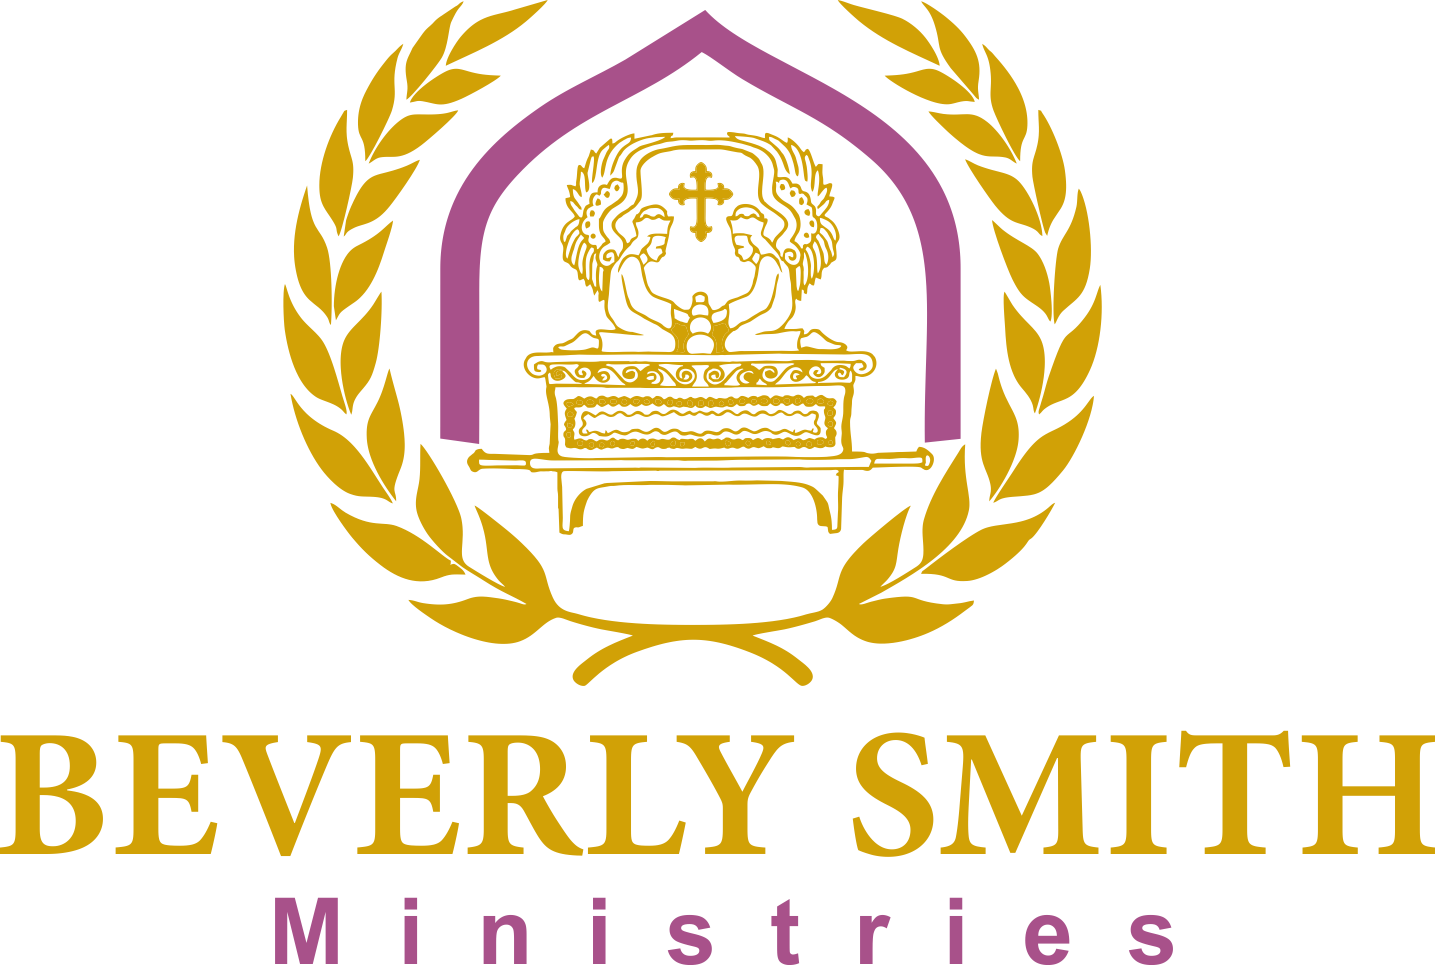 Beverly Smith Ministries